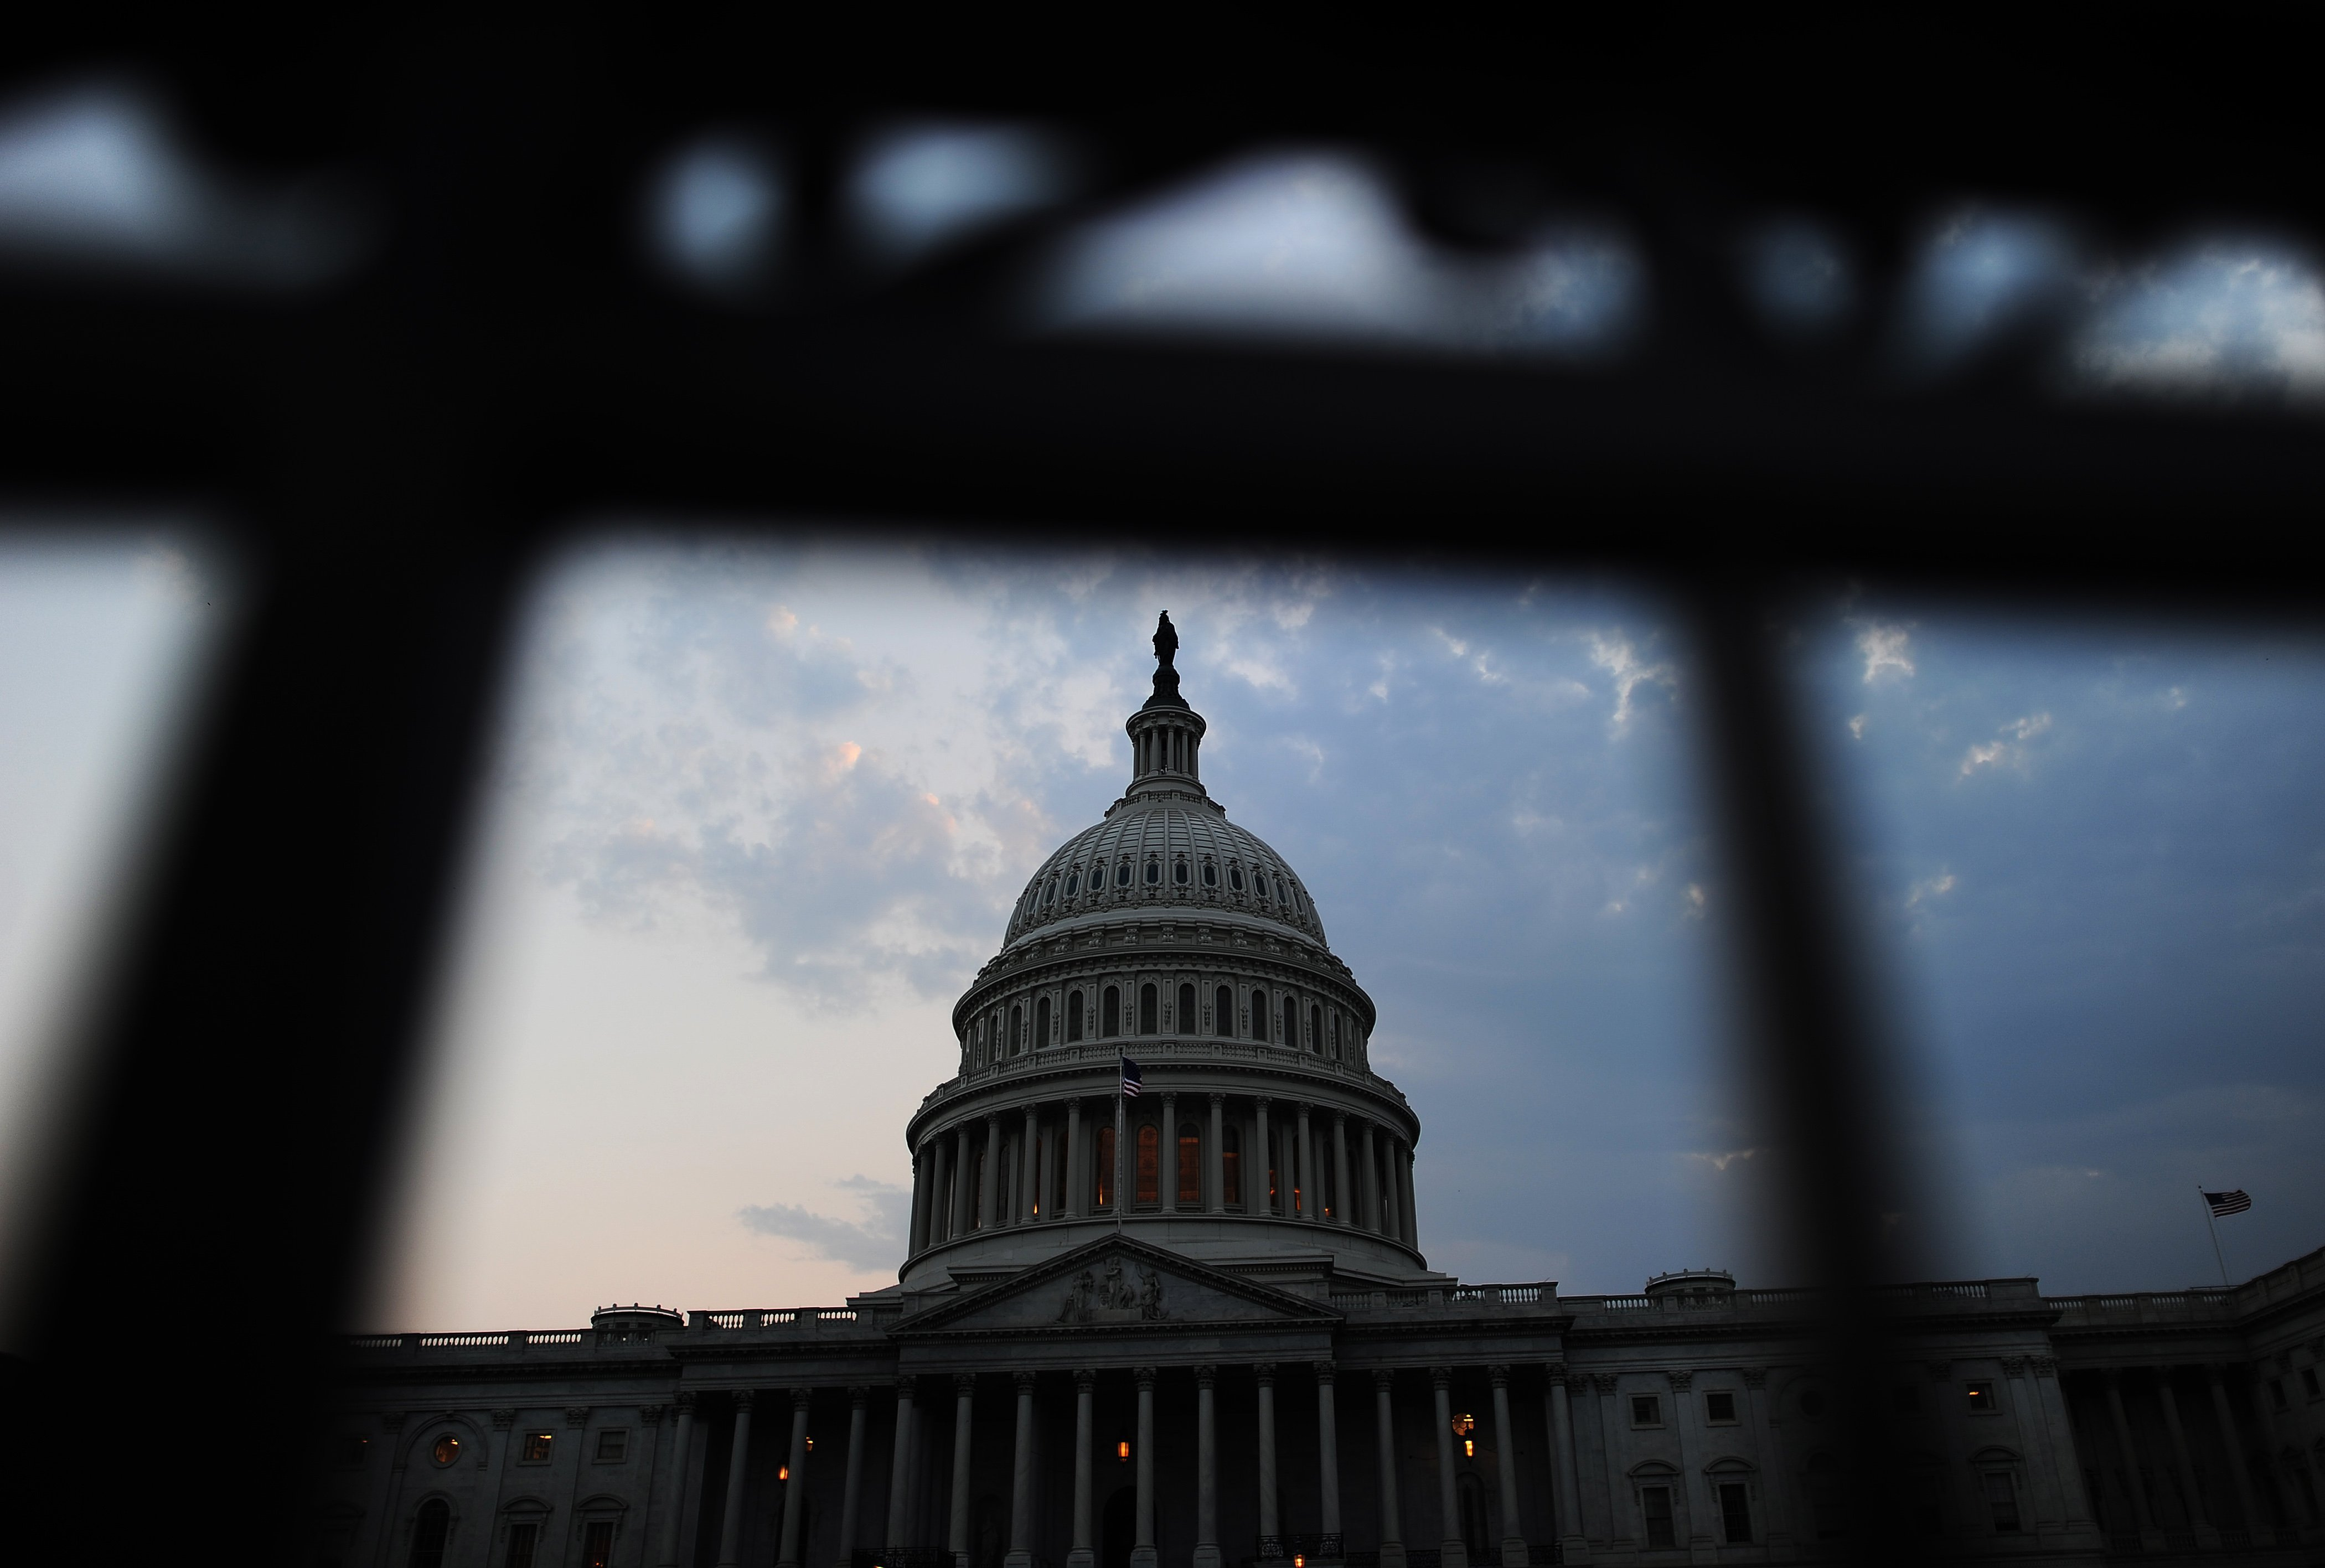 Threats against members of Congress increasing, Capitol Police chief says